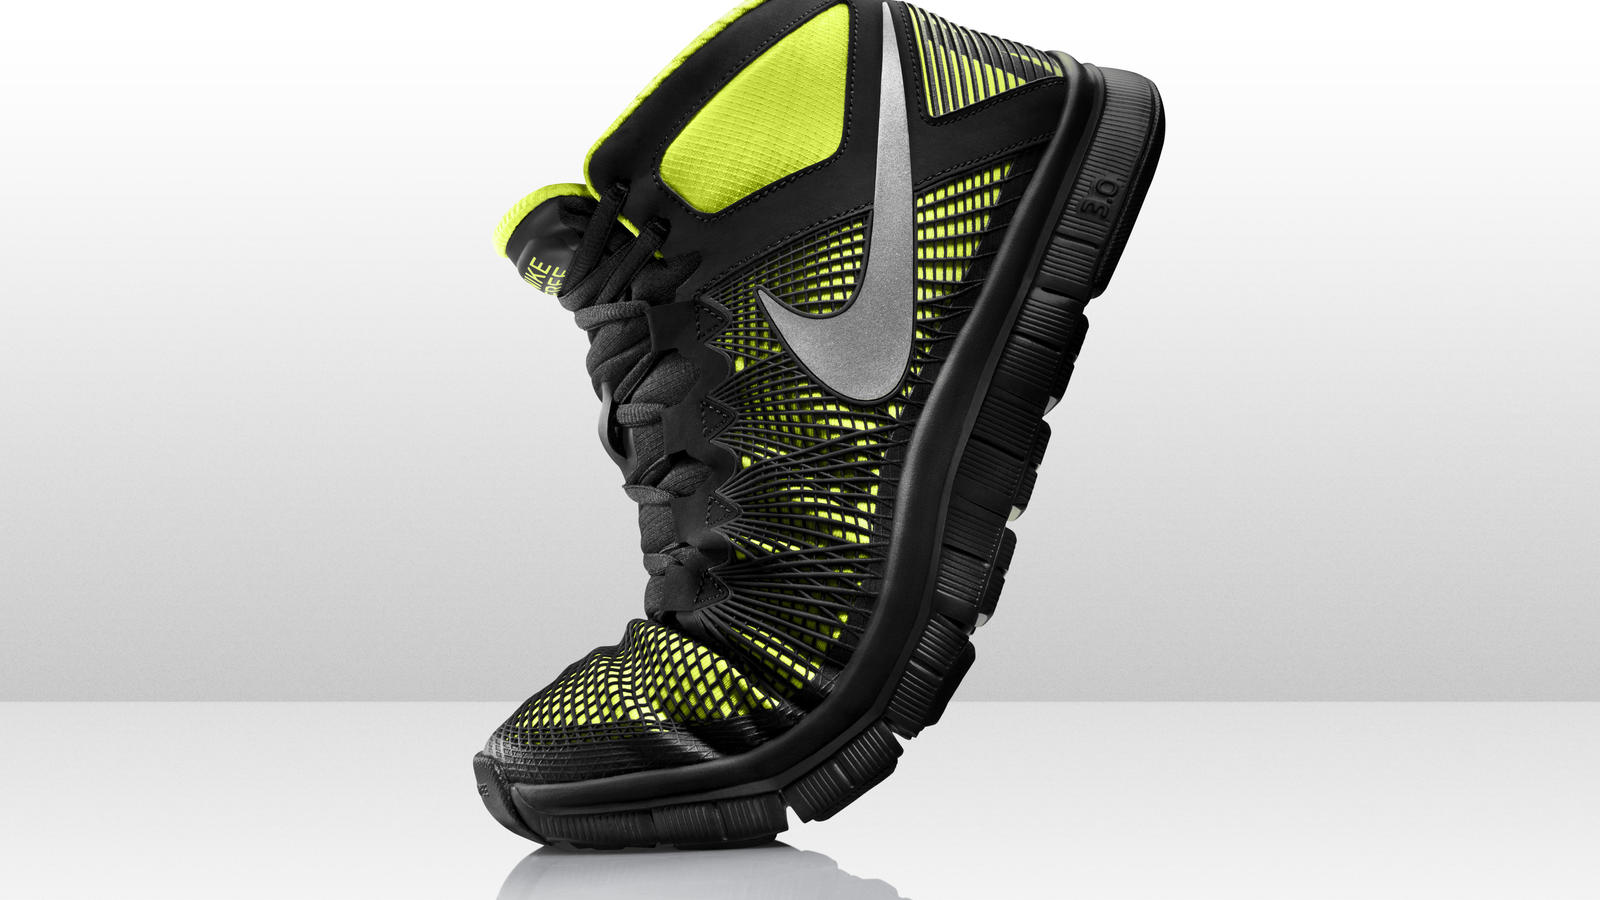 259a41014b2f Introducing the Nike Free Trainer 3.0 Mid Shield - Nike News